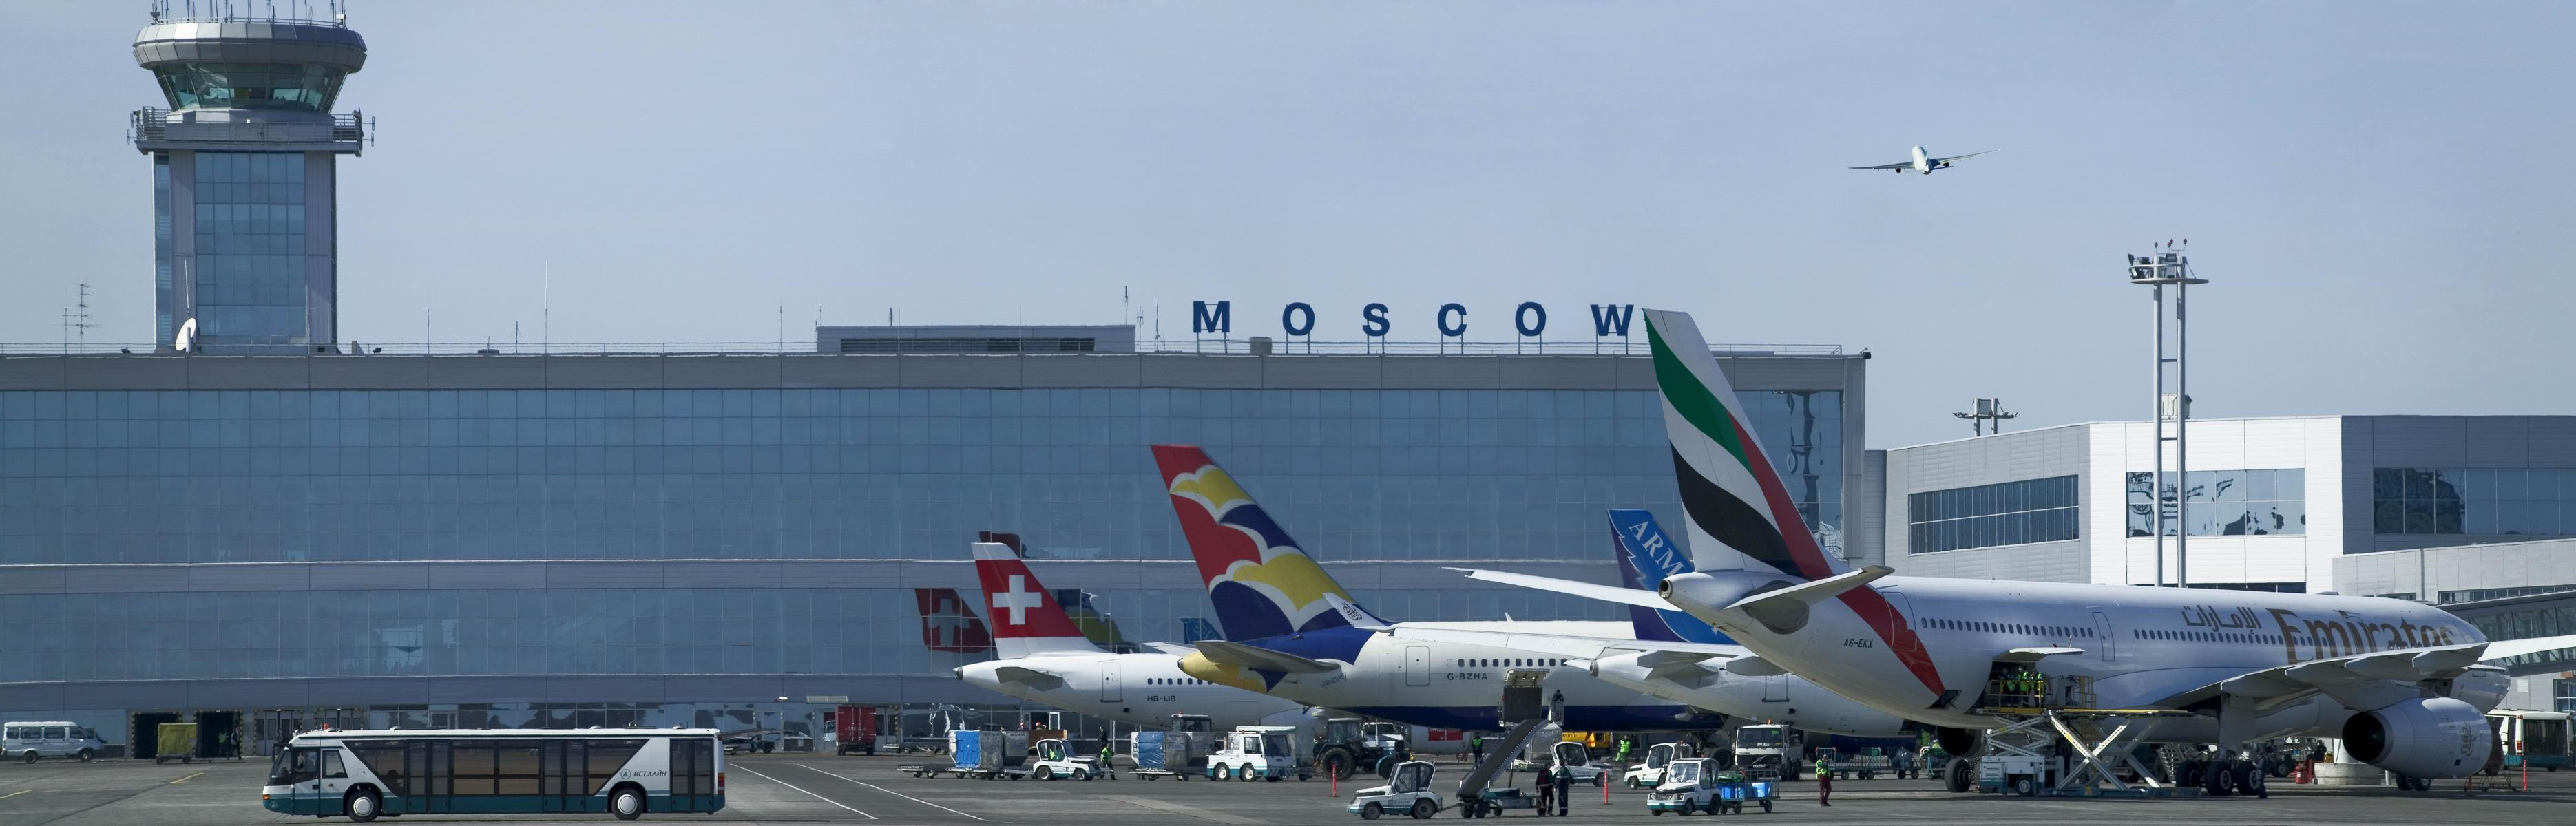 Domodedovo International Airport - The largest and busiest airport in Moscow Russia